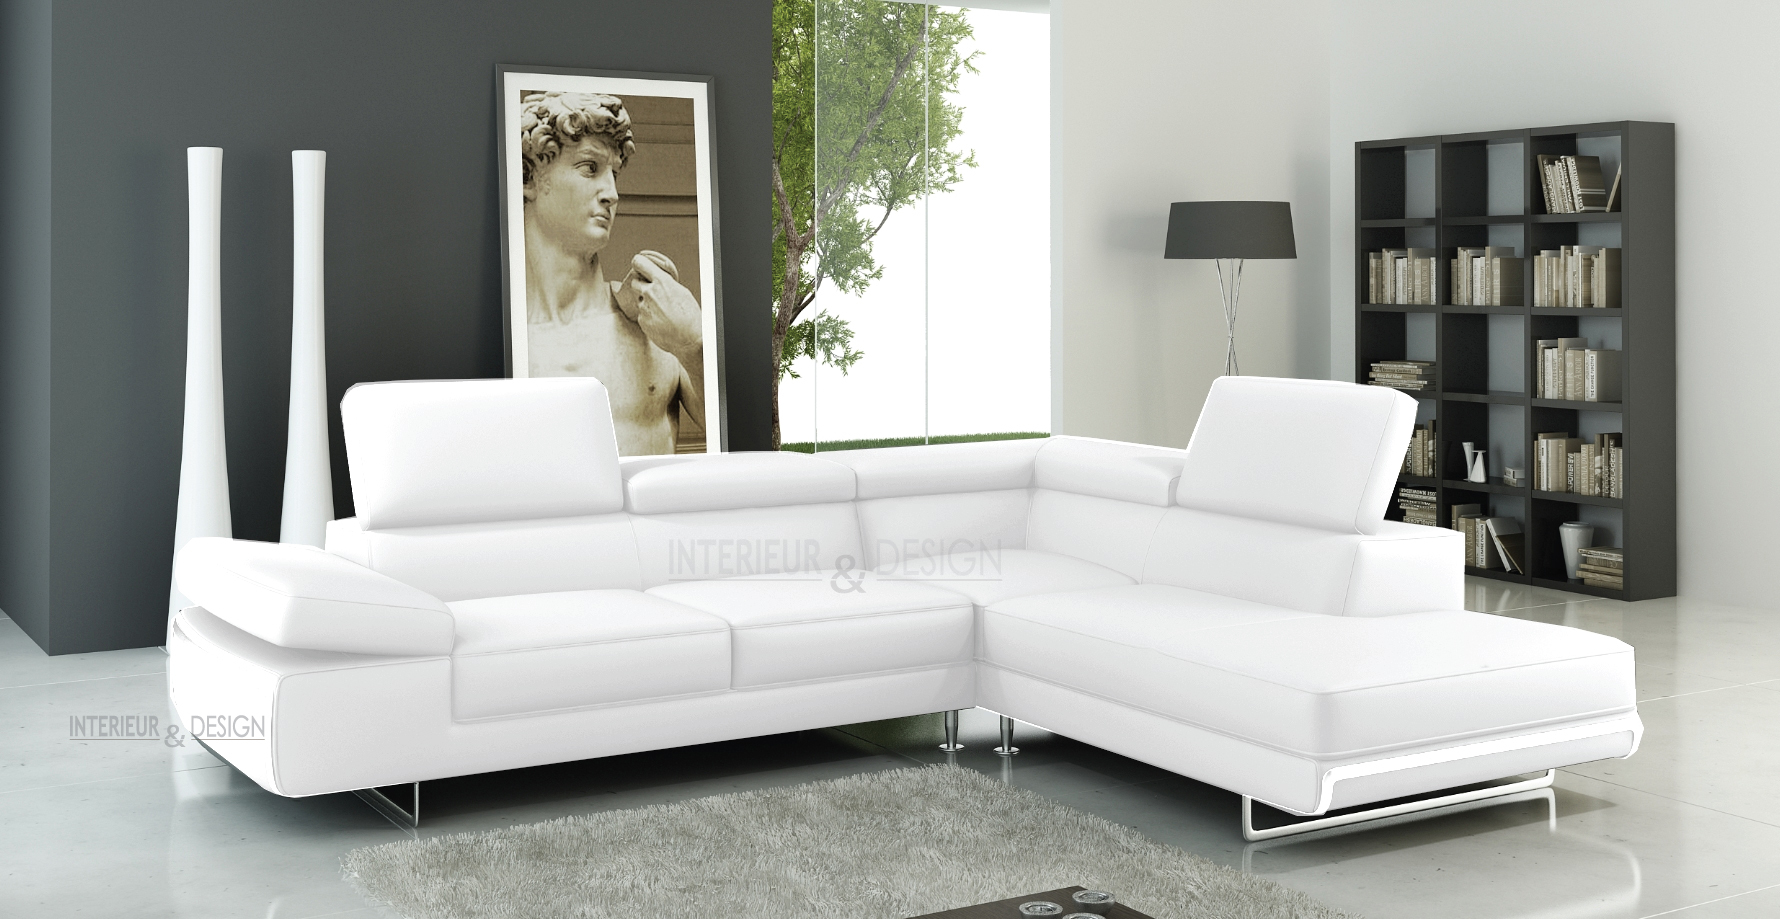 Housse Canapé Angle Conforama Inspirant Photos Article with Tag Canape Cuir Angle Pas Cher